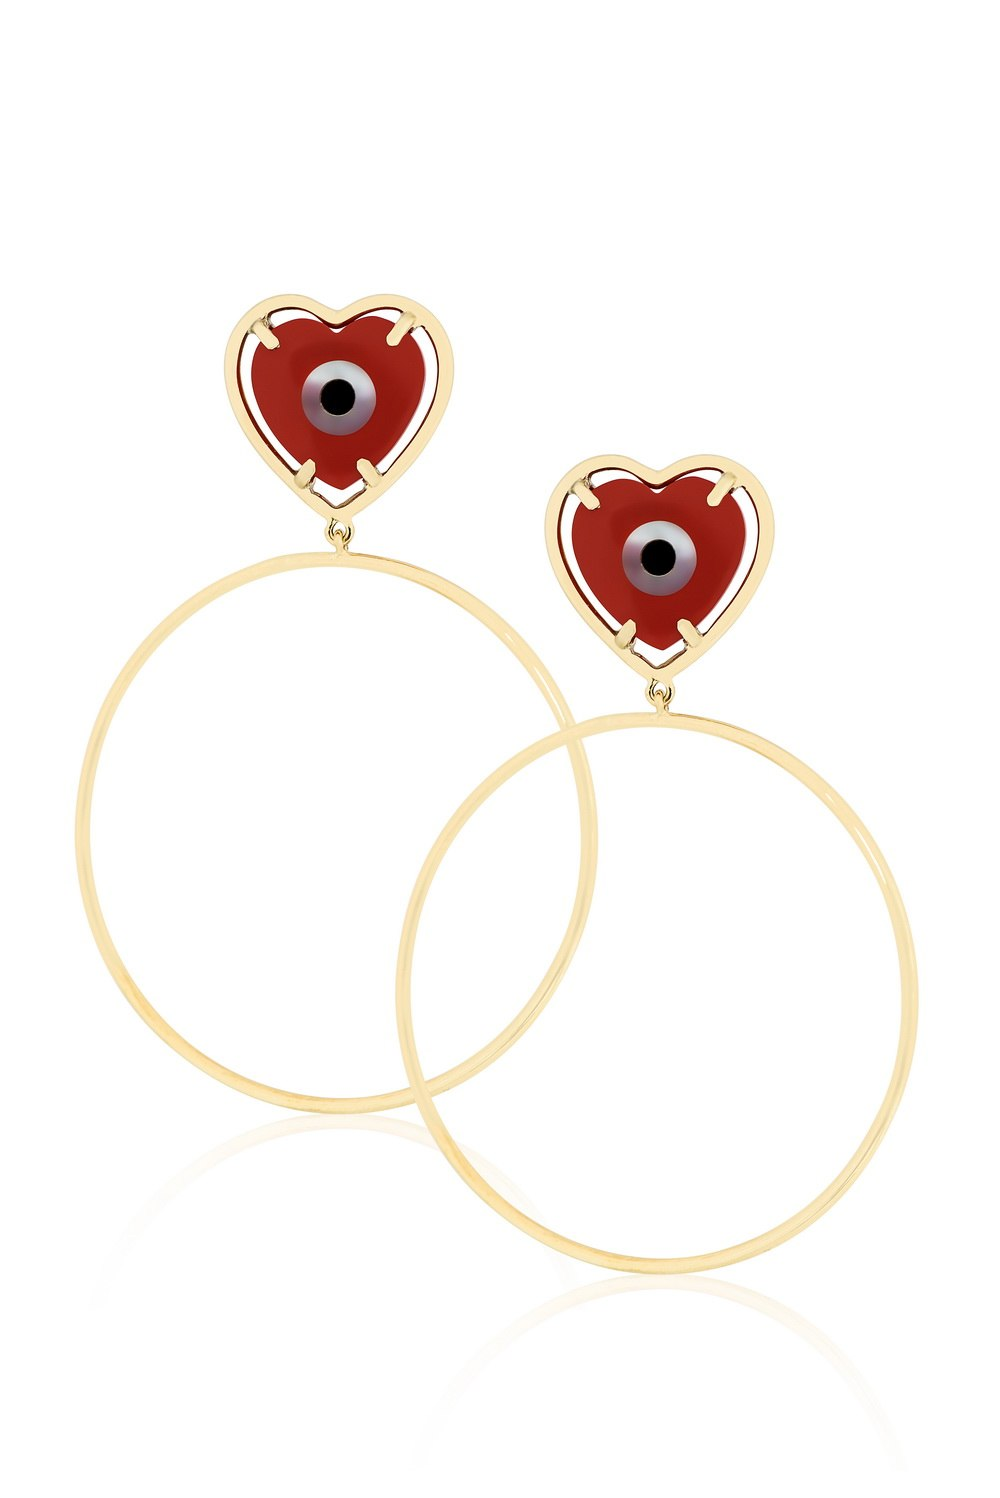 ANASTASIA KESSARIS Evil Eye Red Heart Hoop Earrings SKP180117